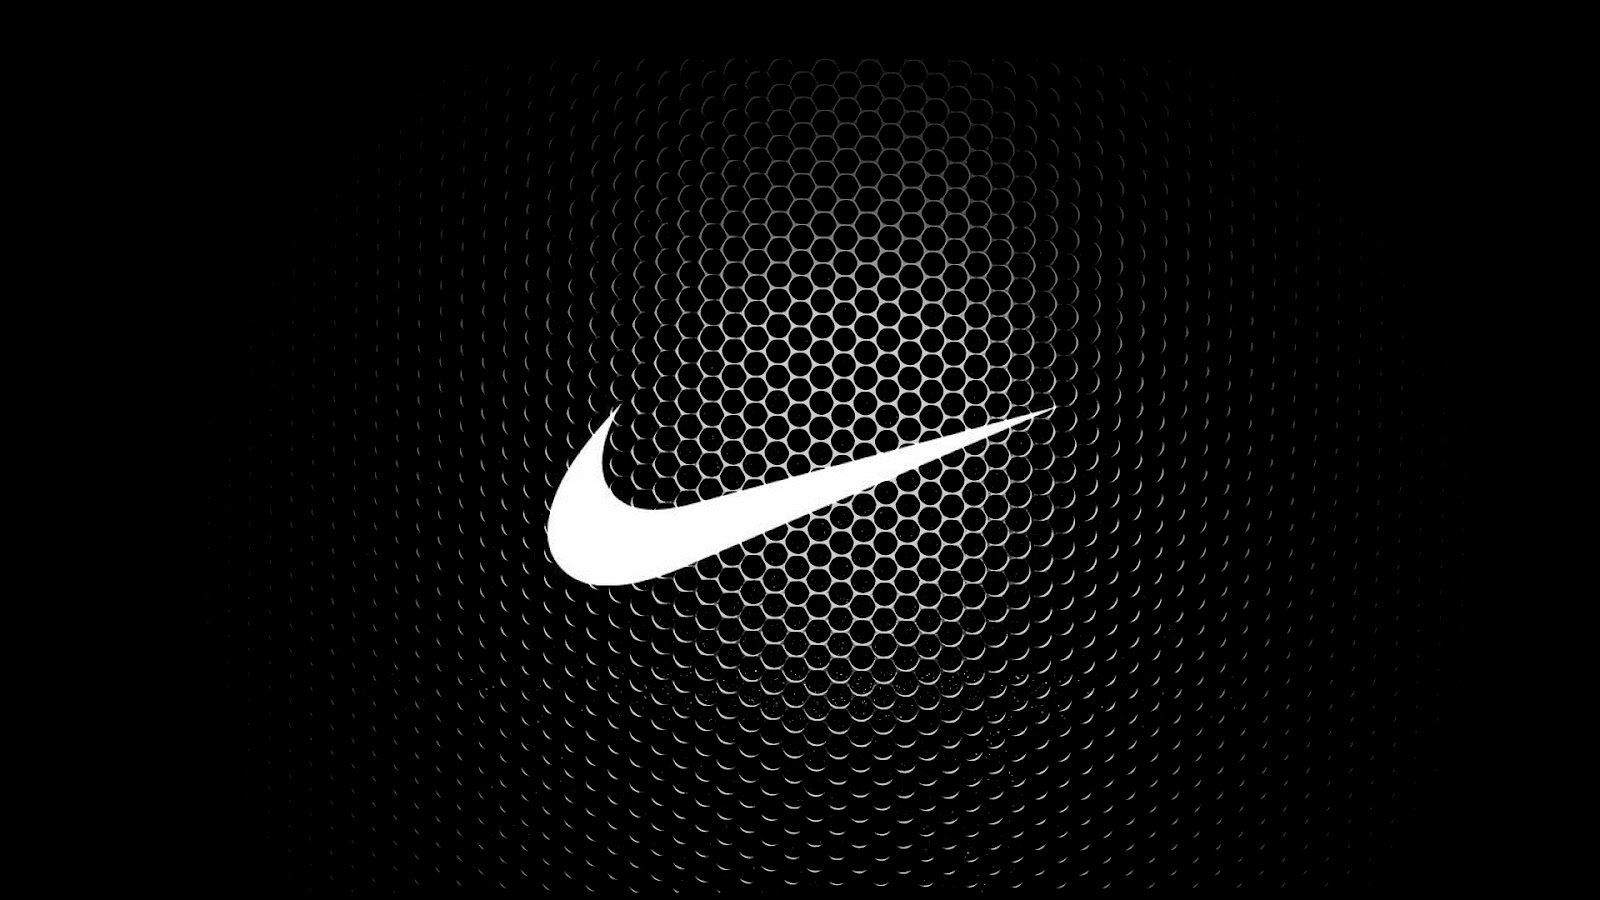 Nike Desktop Wallpaper